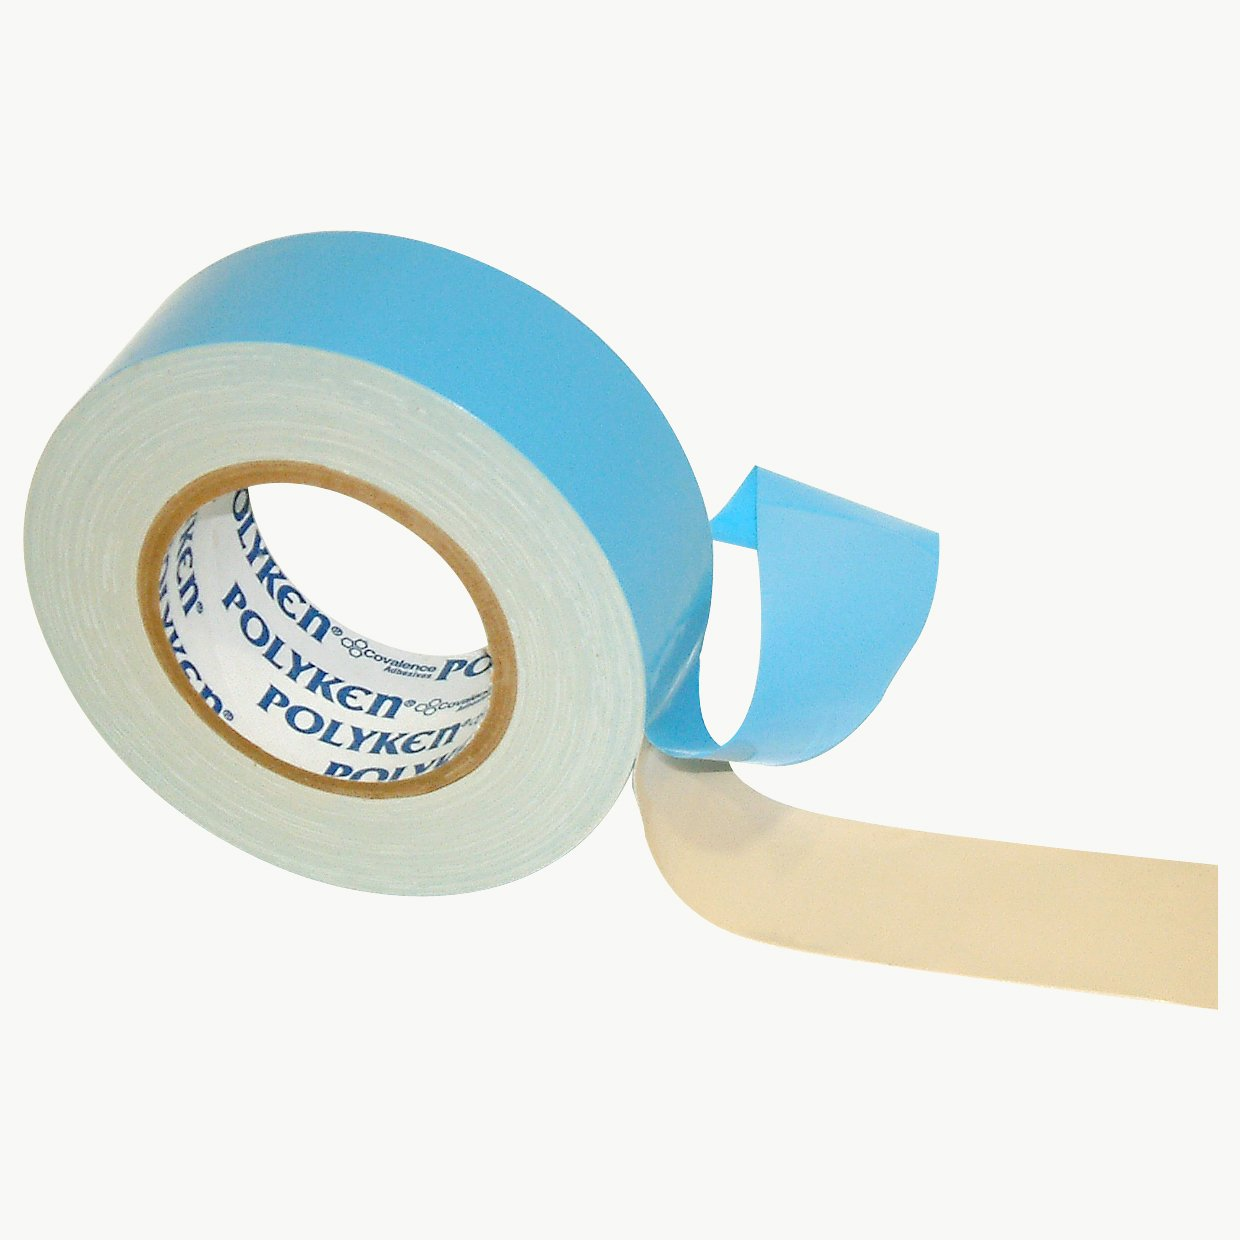 Polyken 108/NAT225 108 Flame Retardant Double Coated Cloth Carpet Tape: 2'' x 75 ft, Natural by Polyken (Image #1)